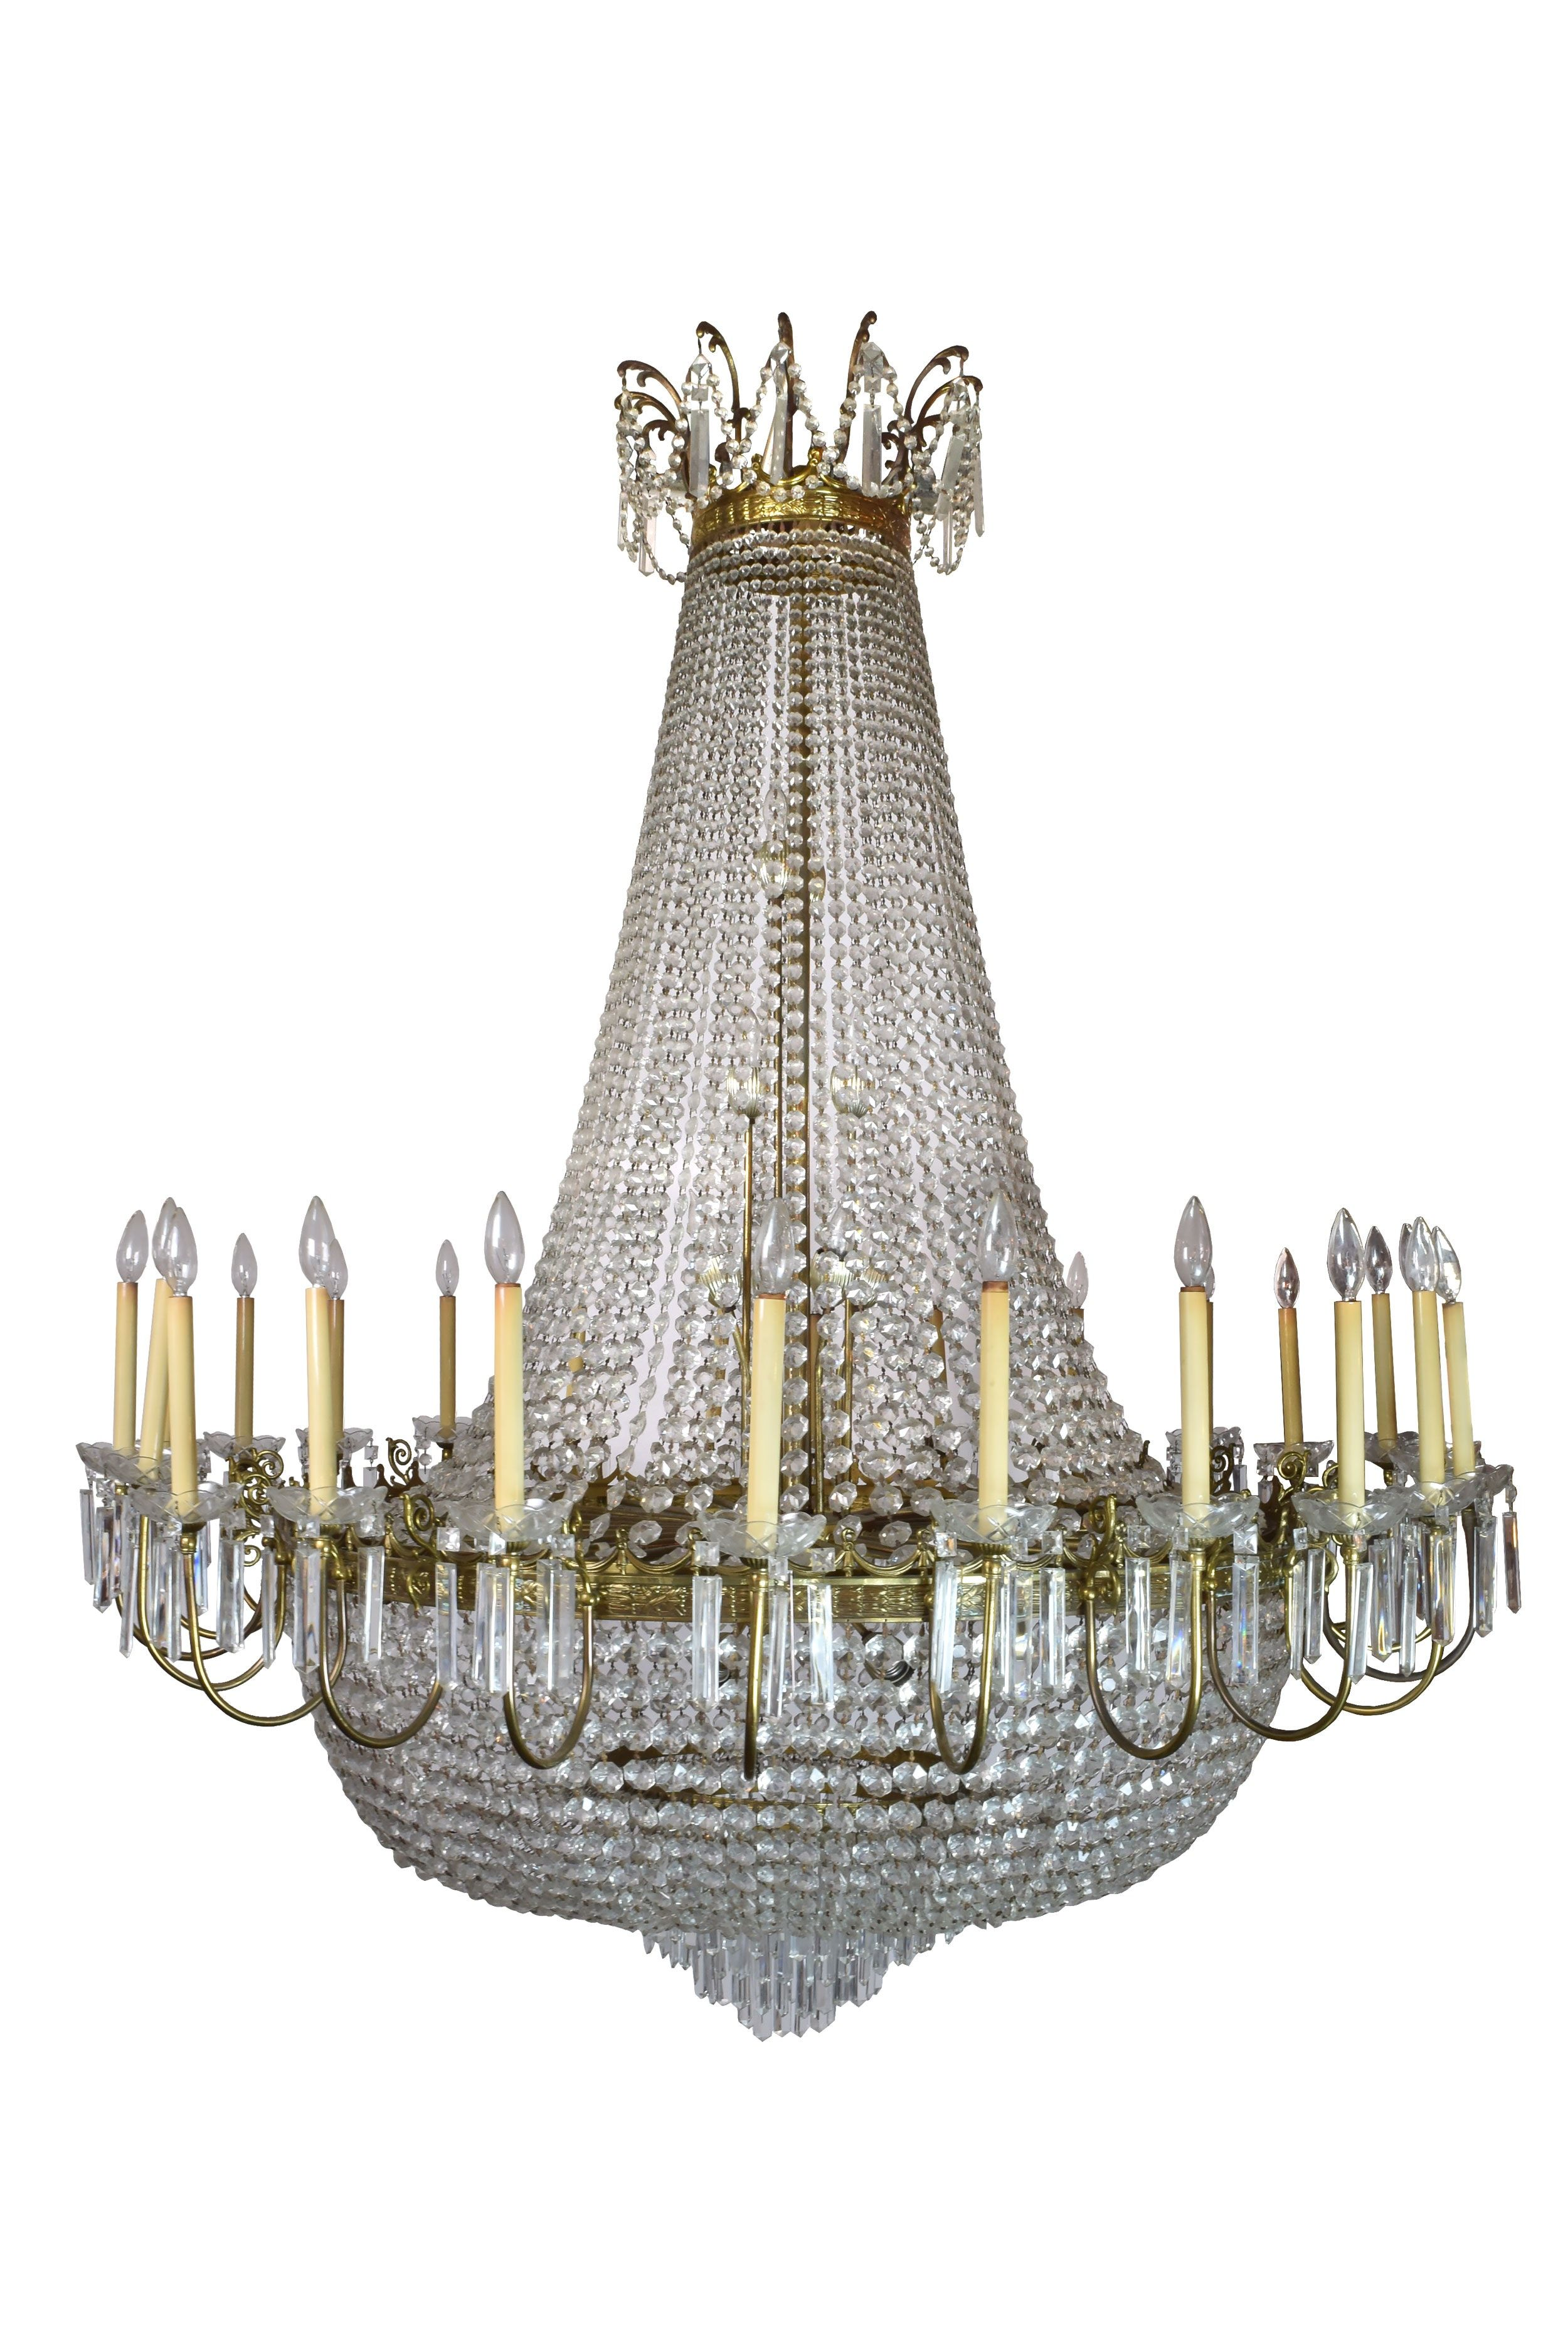 Where can I buy chandeliers 53